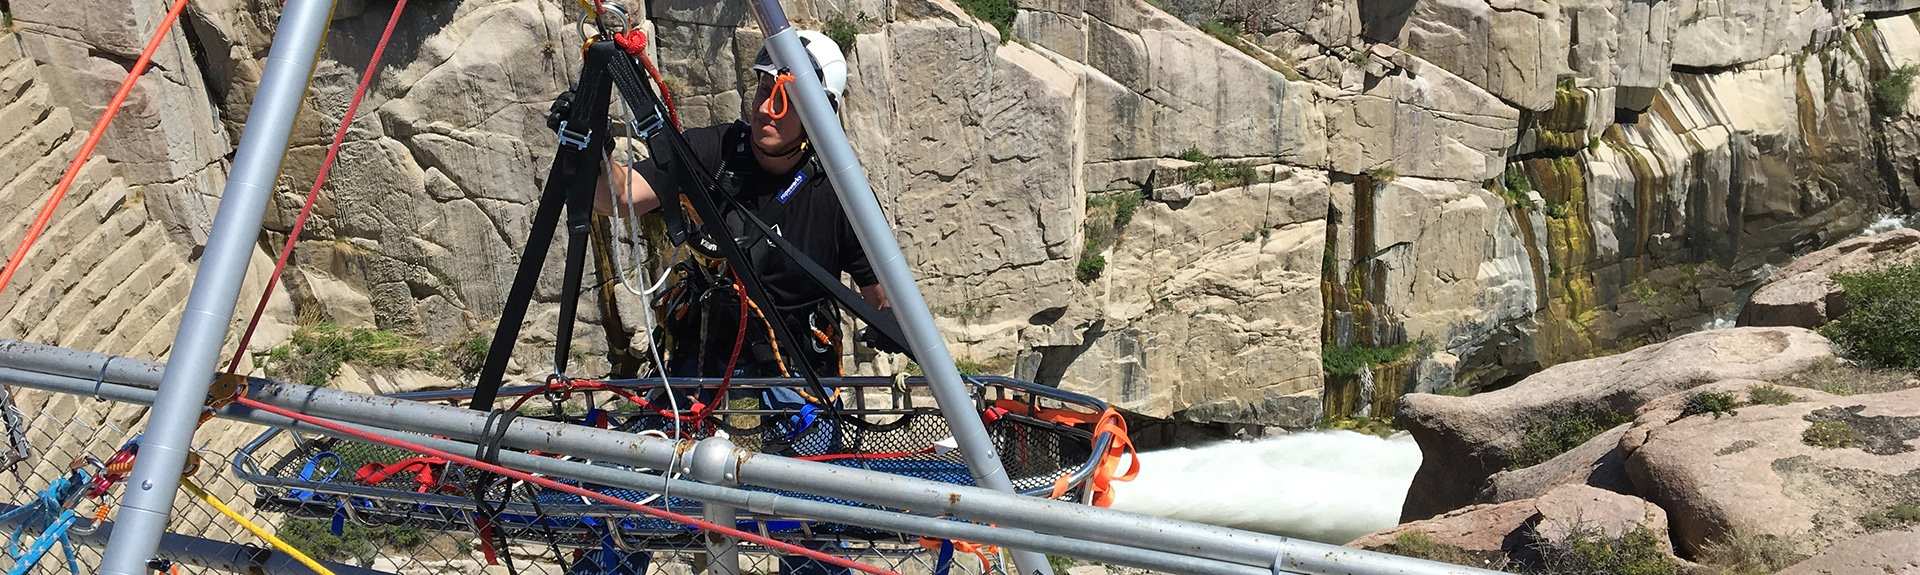 Peak rescue rope access